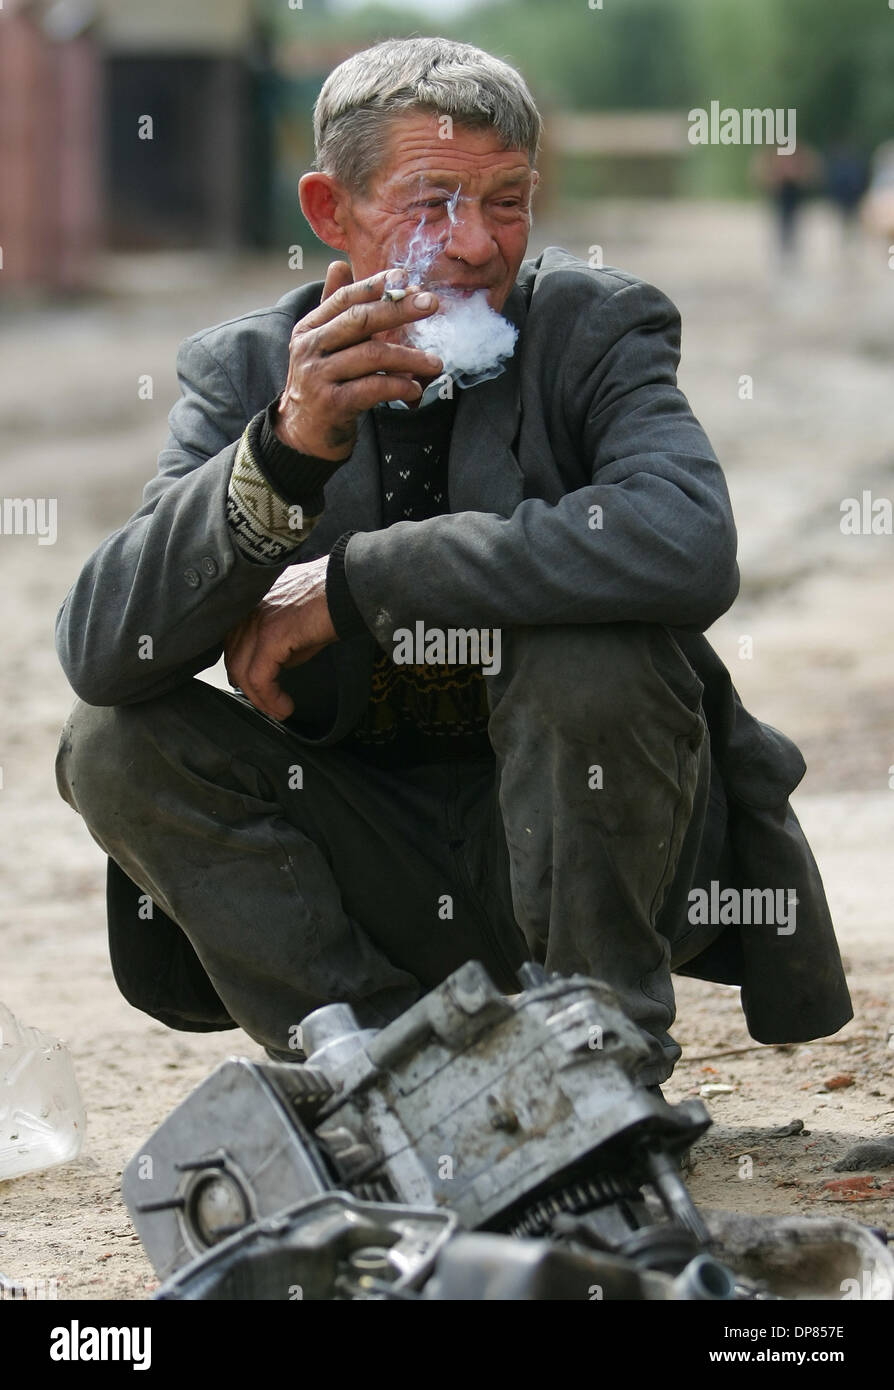 Belarus town of Gomel. Andrey is repairing his old motor cycle.People of this belarus town also suffered of Chernobyl disaster in April 1986.(Credit Image: © PhotoXpress/ZUMA Press) RESTRICTIONS: North and South America Rights ONLY! - Stock Image